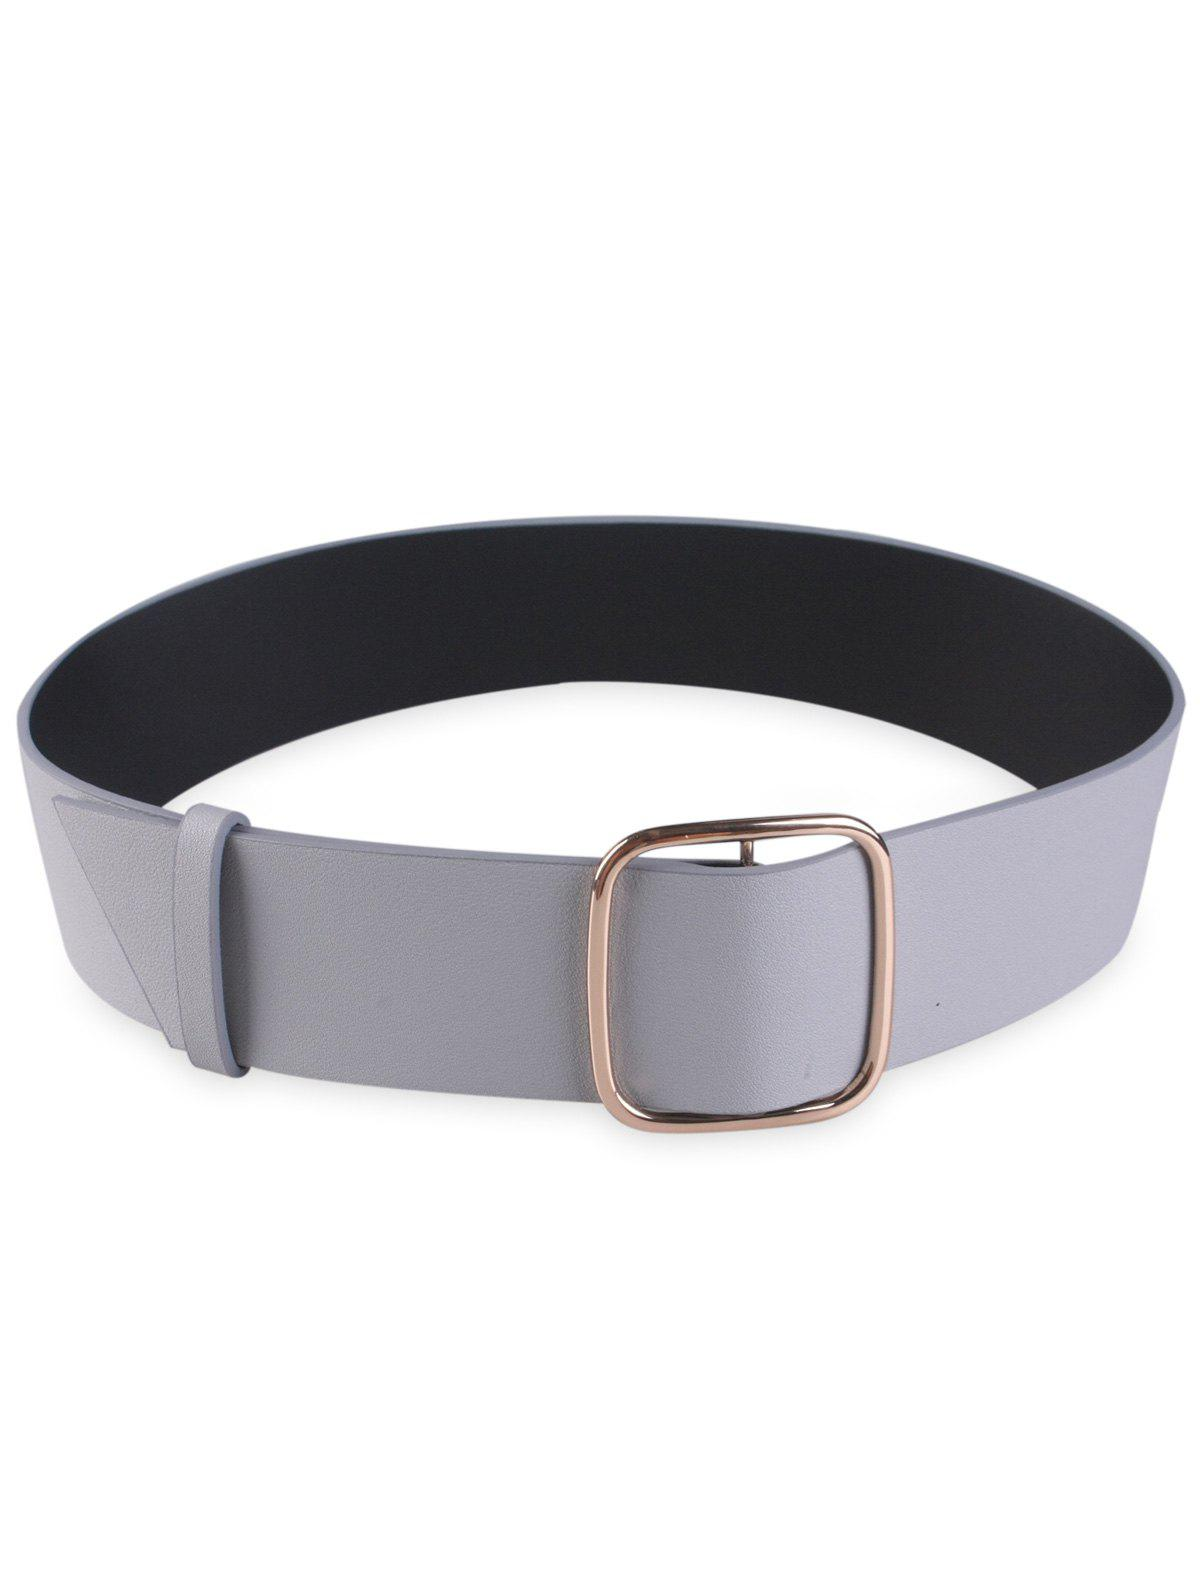 Artificial Leather Rectangle Buckle Wide Coat Belt - GRAY